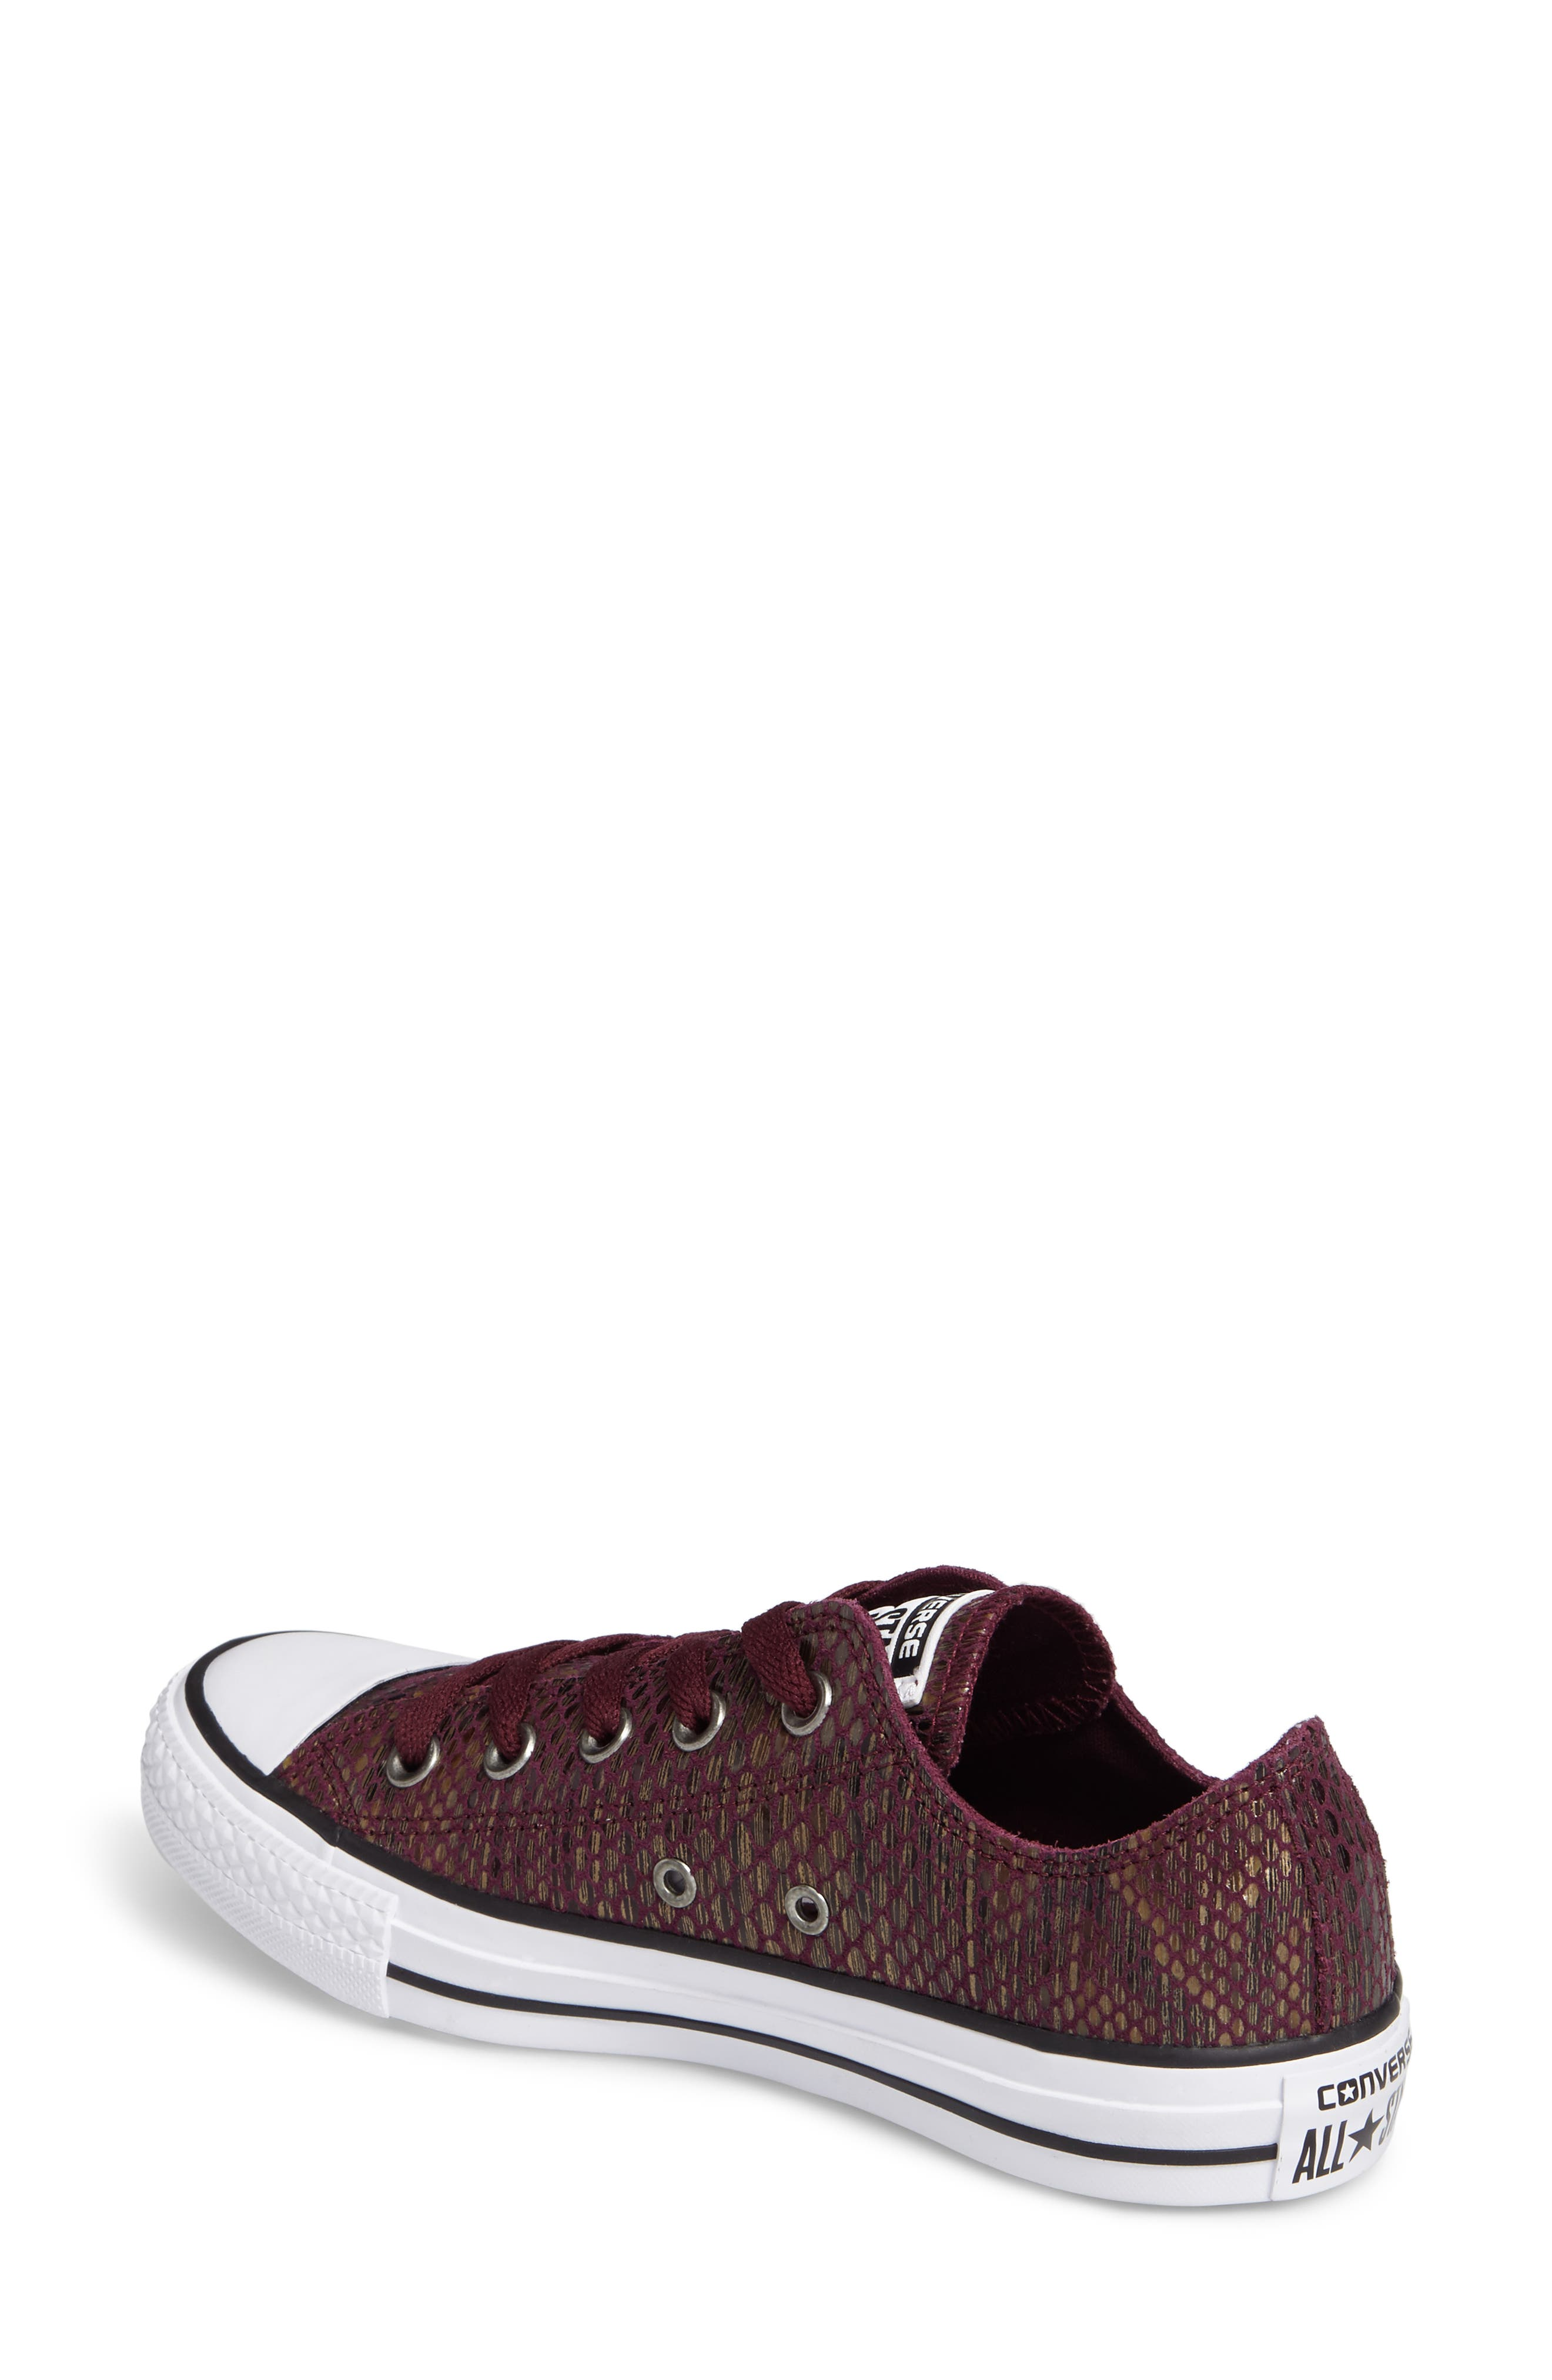 Chuck Taylor<sup>®</sup> All Star<sup>®</sup> Ox Leather Sneaker,                             Alternate thumbnail 4, color,